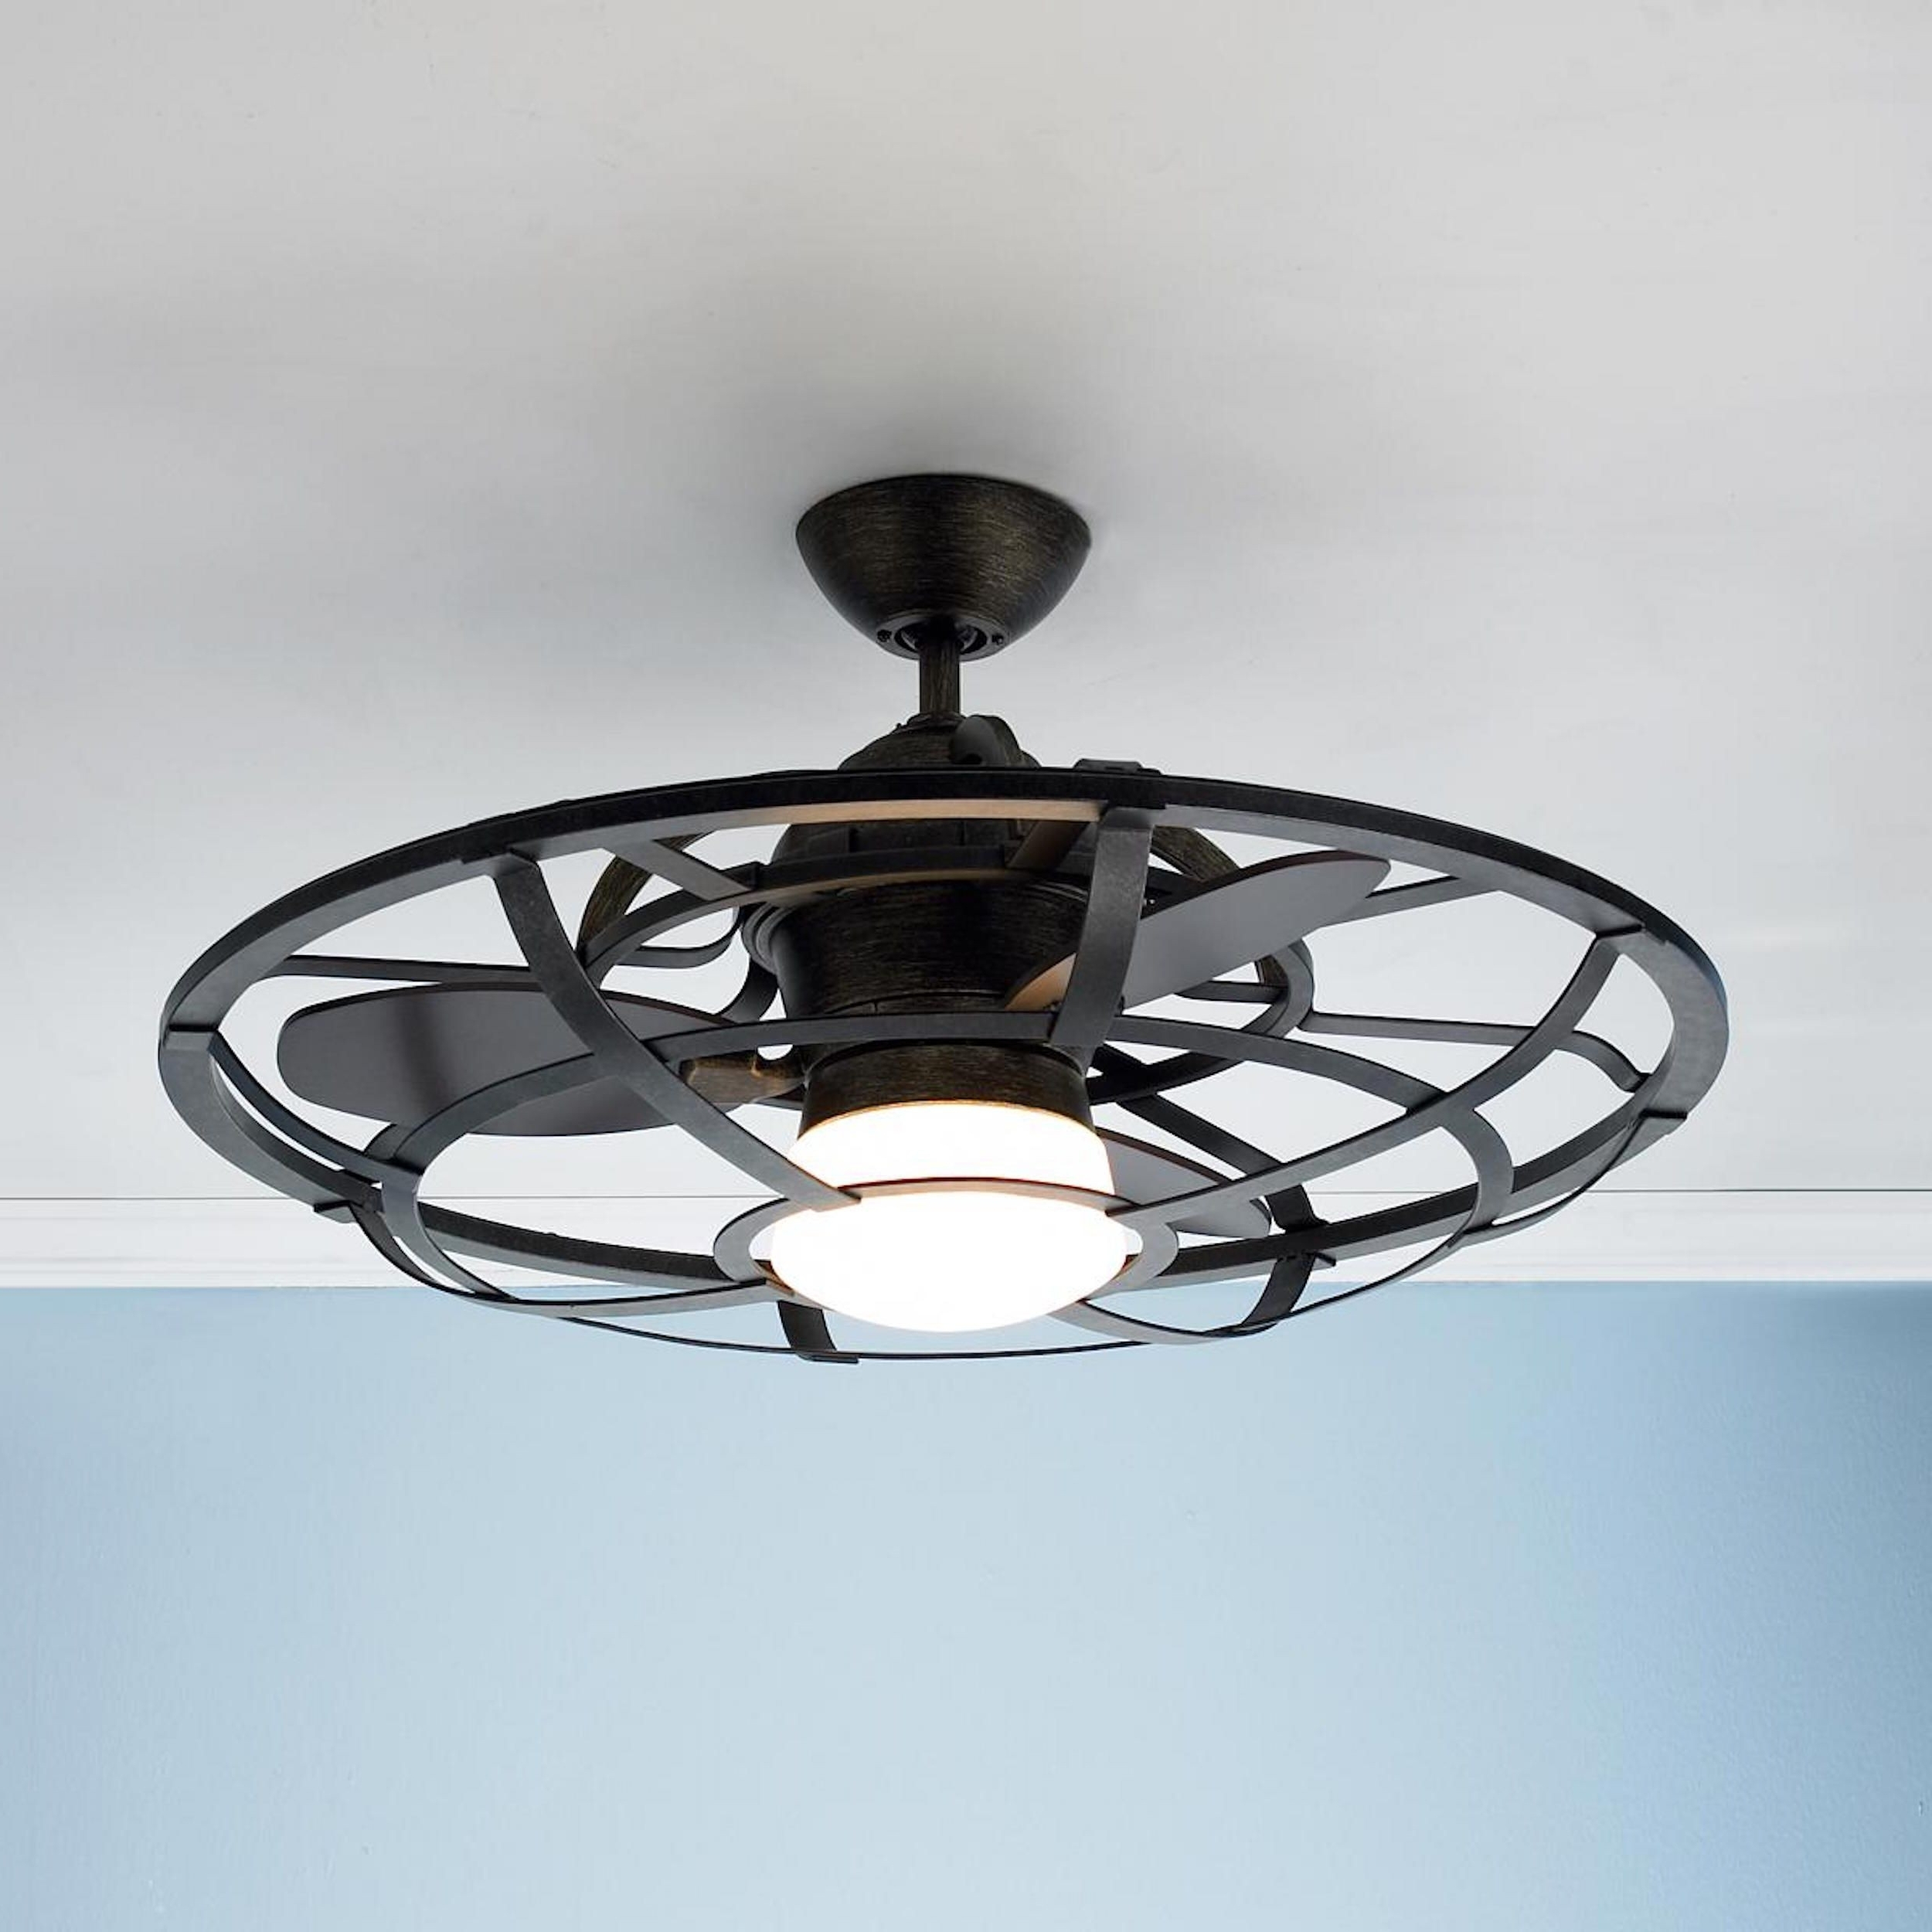 Outdoor Windmill Ceiling Fans With Light With Regard To Famous Farmhouse Ceiling Fan Lowes. Simple Ceiling Fans Lowes Ceiling Fans (Gallery 19 of 20)